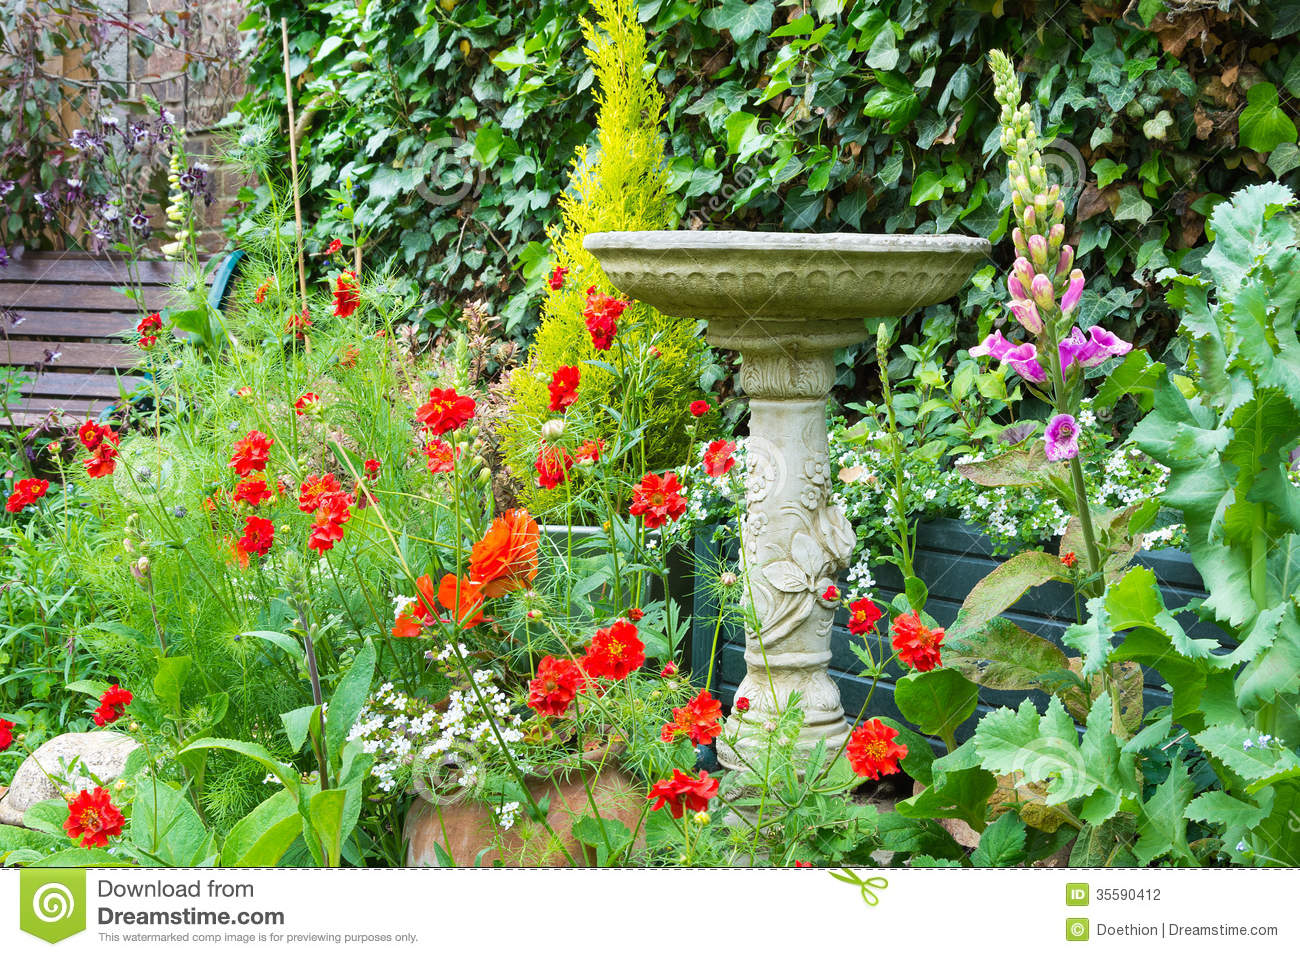 Bird Bath in Garden Clip Art.